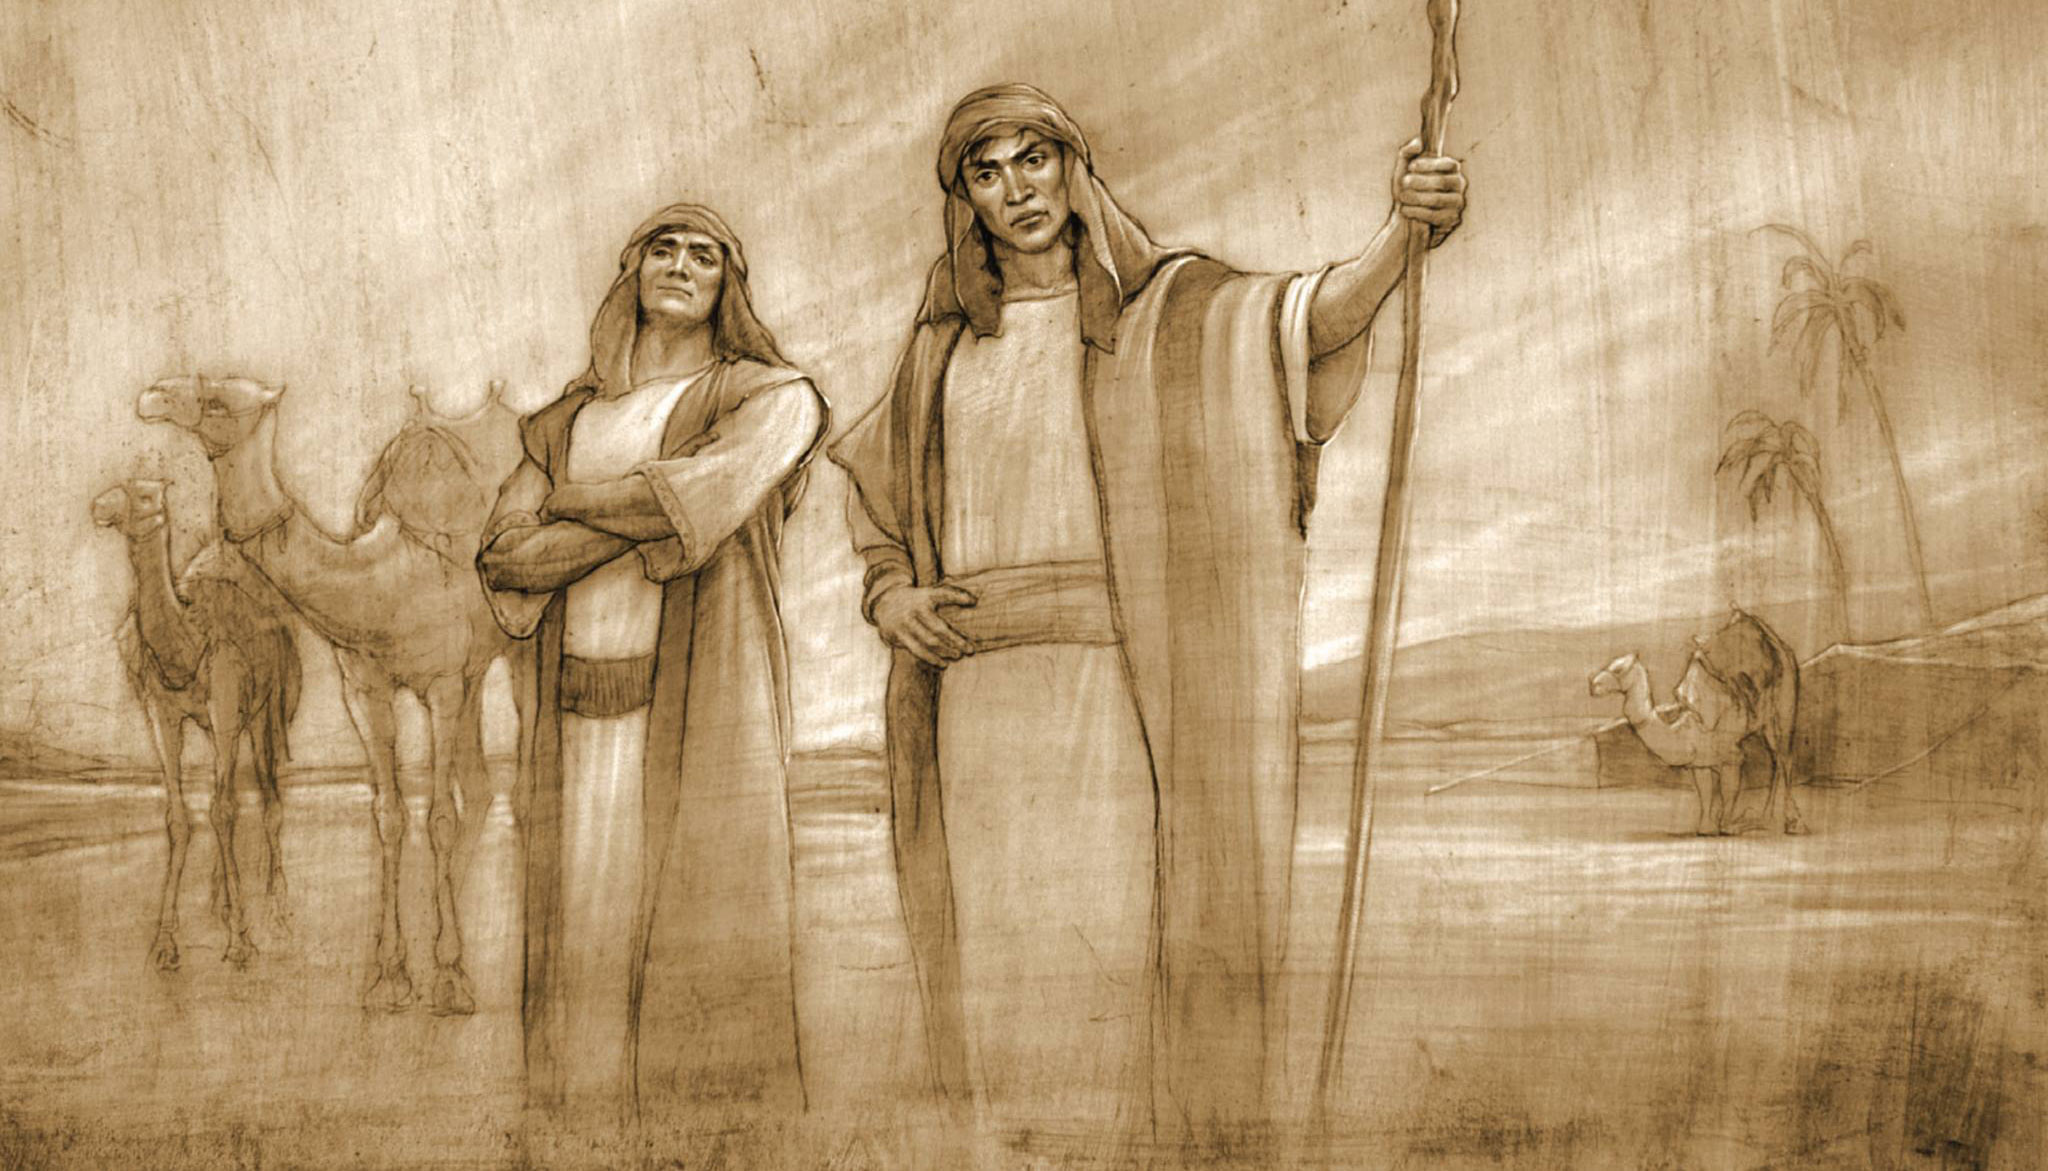 Laman and Lemuel struggled with pride, which kept them from fully accessing the Spirit. Image courtesy of Joseph Brickey.